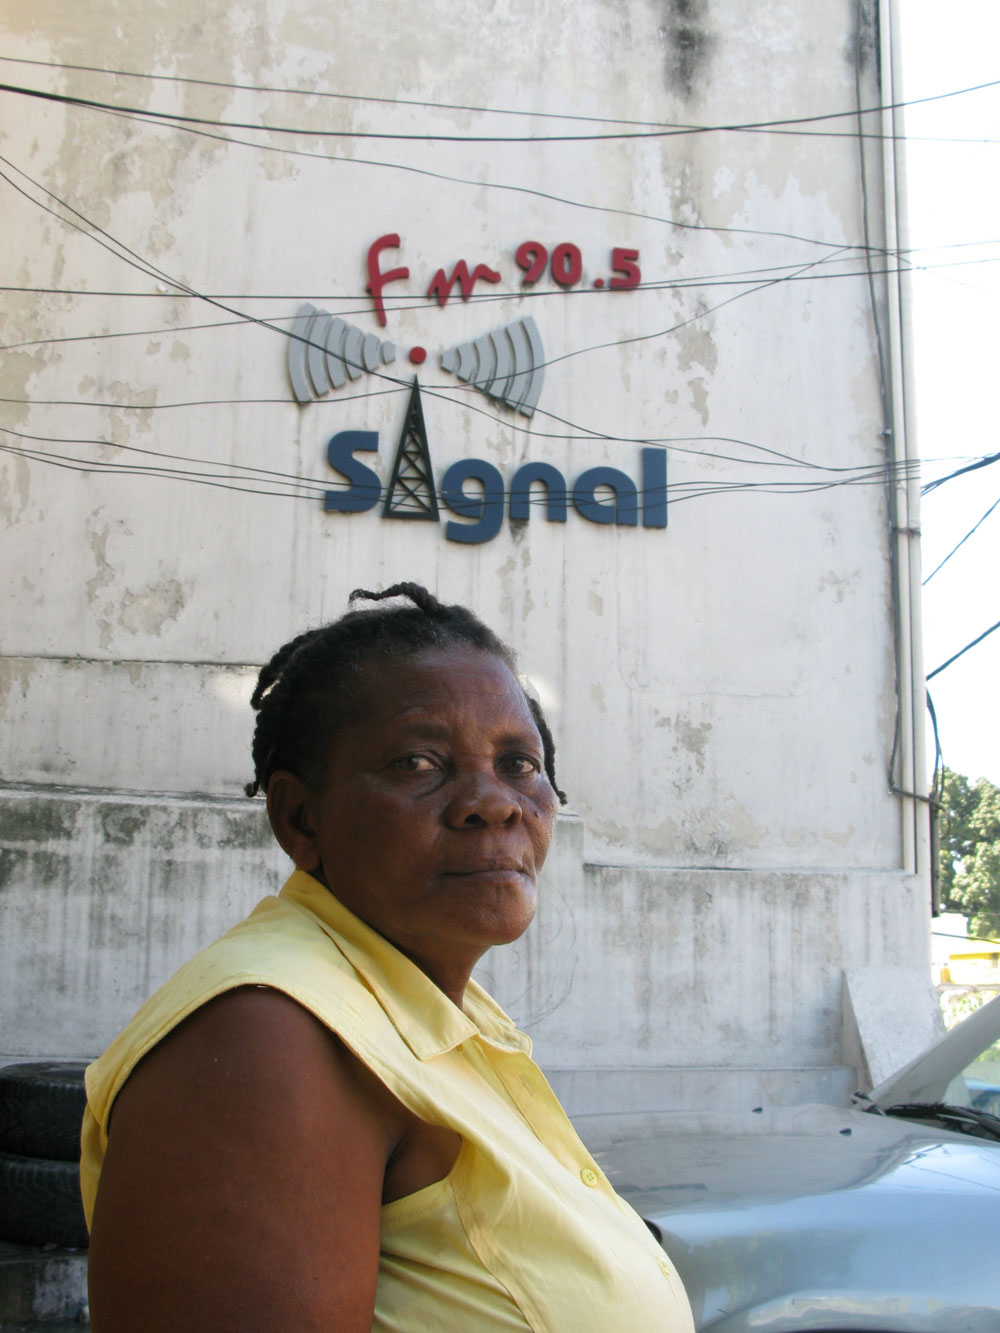 Andrea Ansenne came to Signal FM looking for her niece.